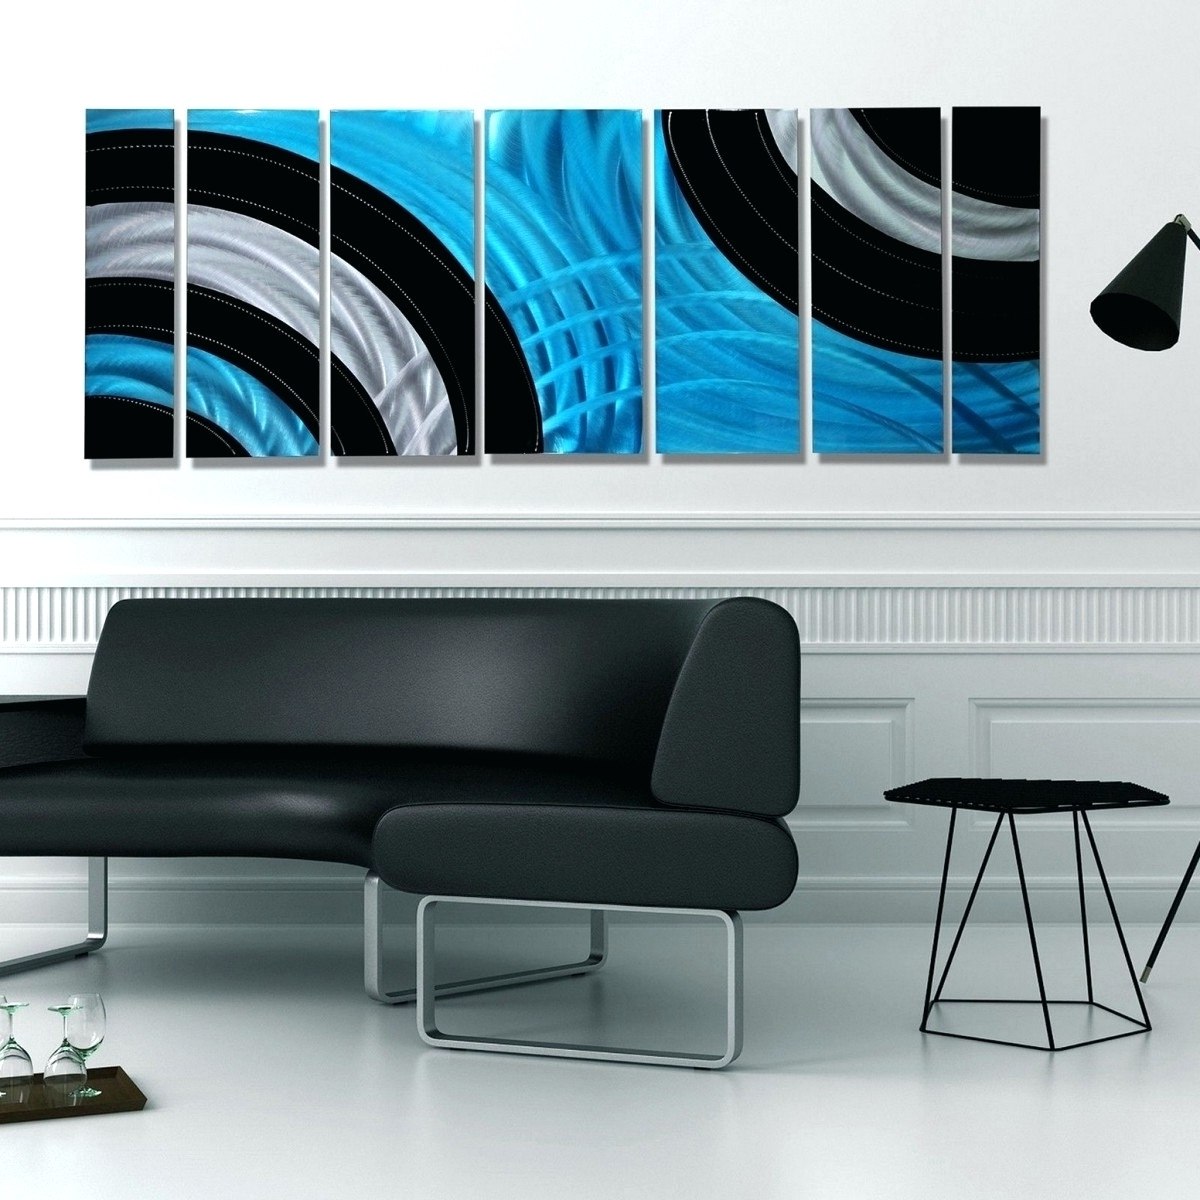 Wall Arts ~ Modern Metal Wall Art Amazon Modern Metal Wall Art Uk Throughout Fashionable Modern Wall Art Uk (View 11 of 15)